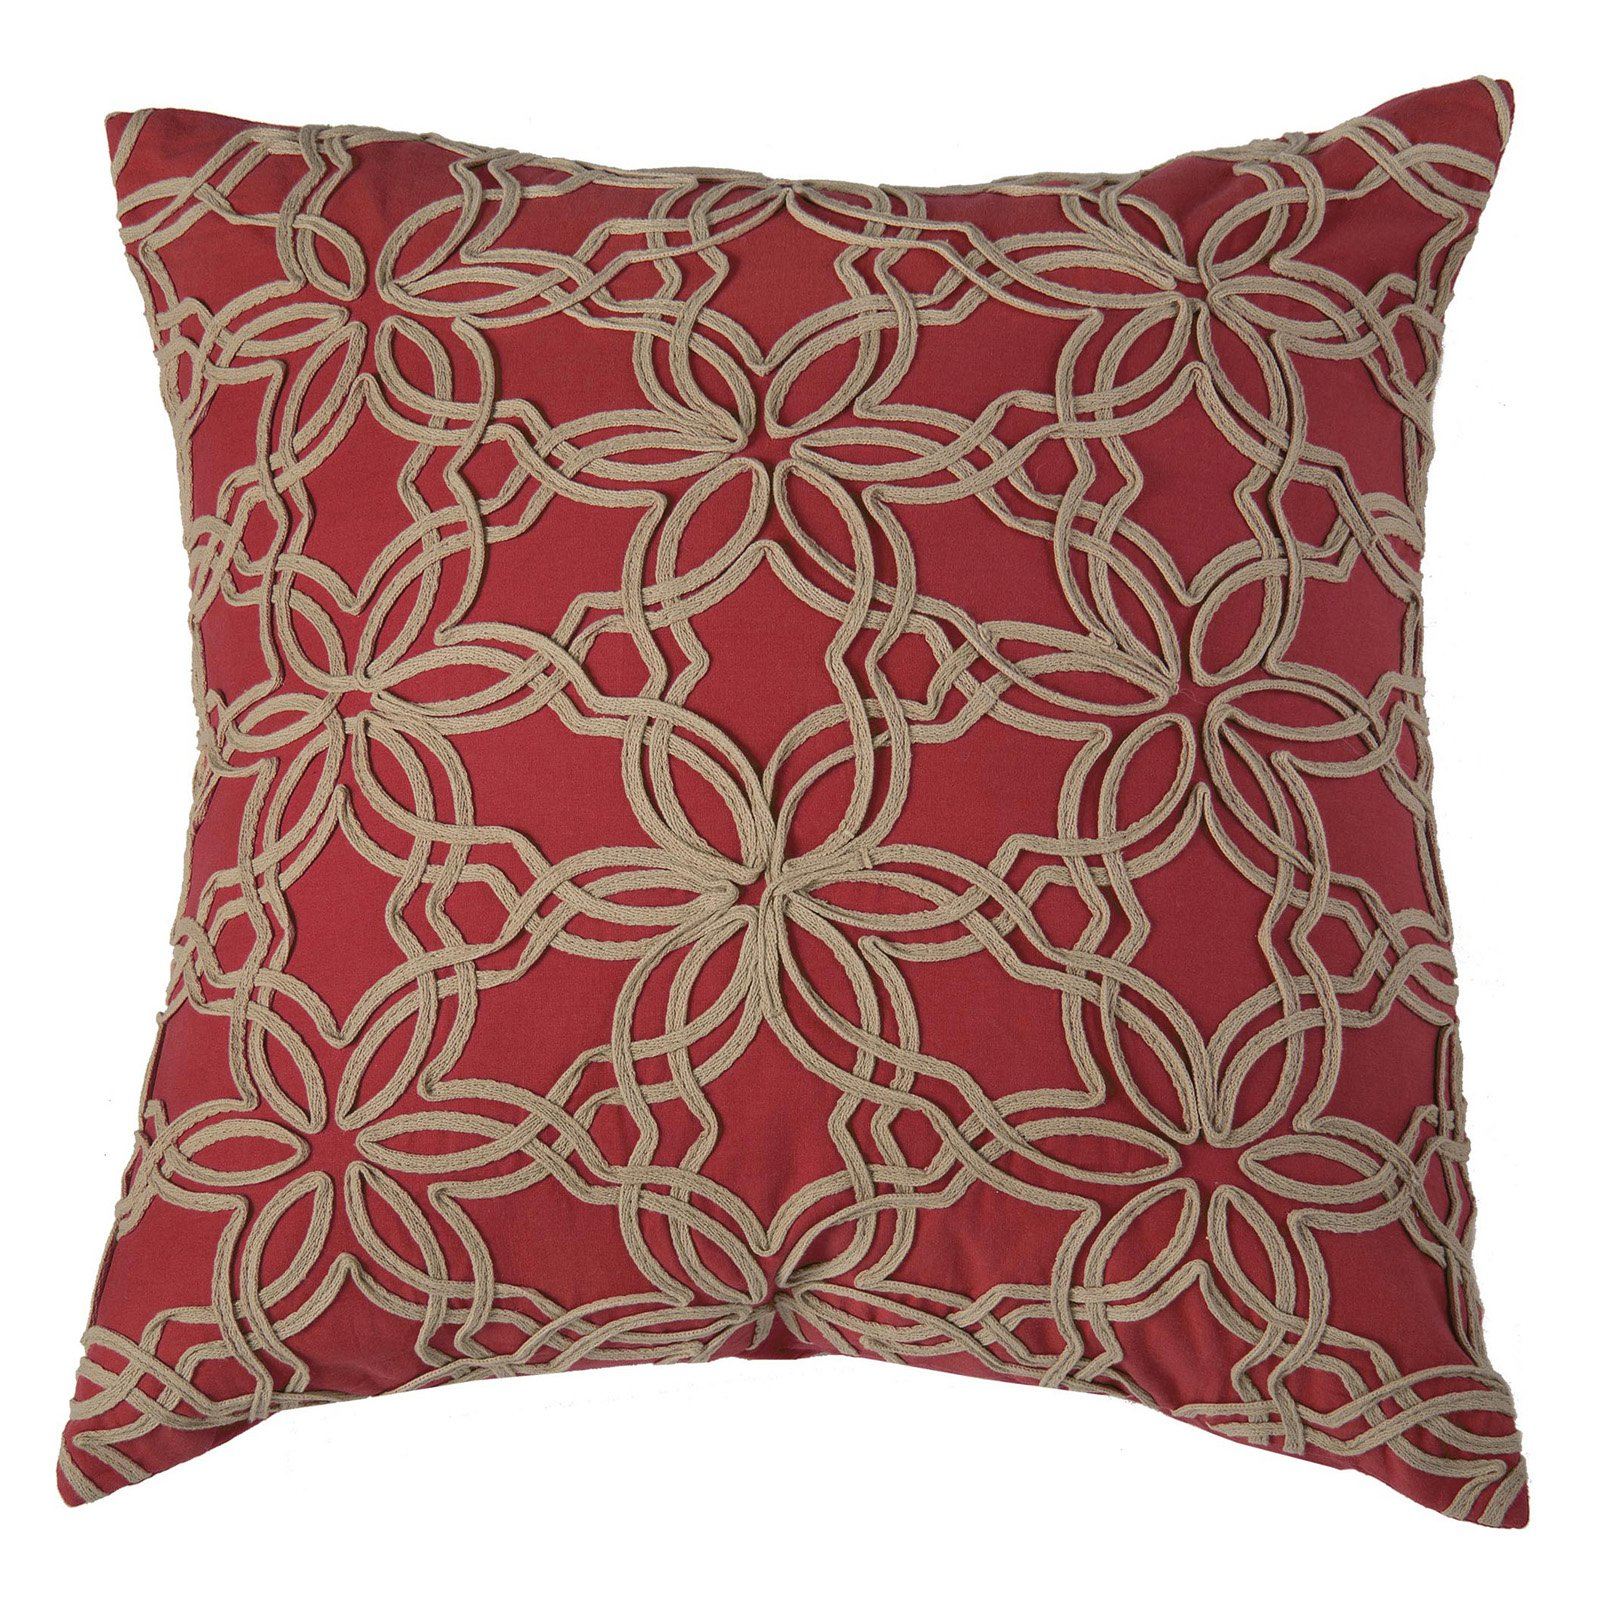 """Rizzy Home Decorative Poly Filled Throw Pillow Textured Floral 20""""X20"""" Red"""